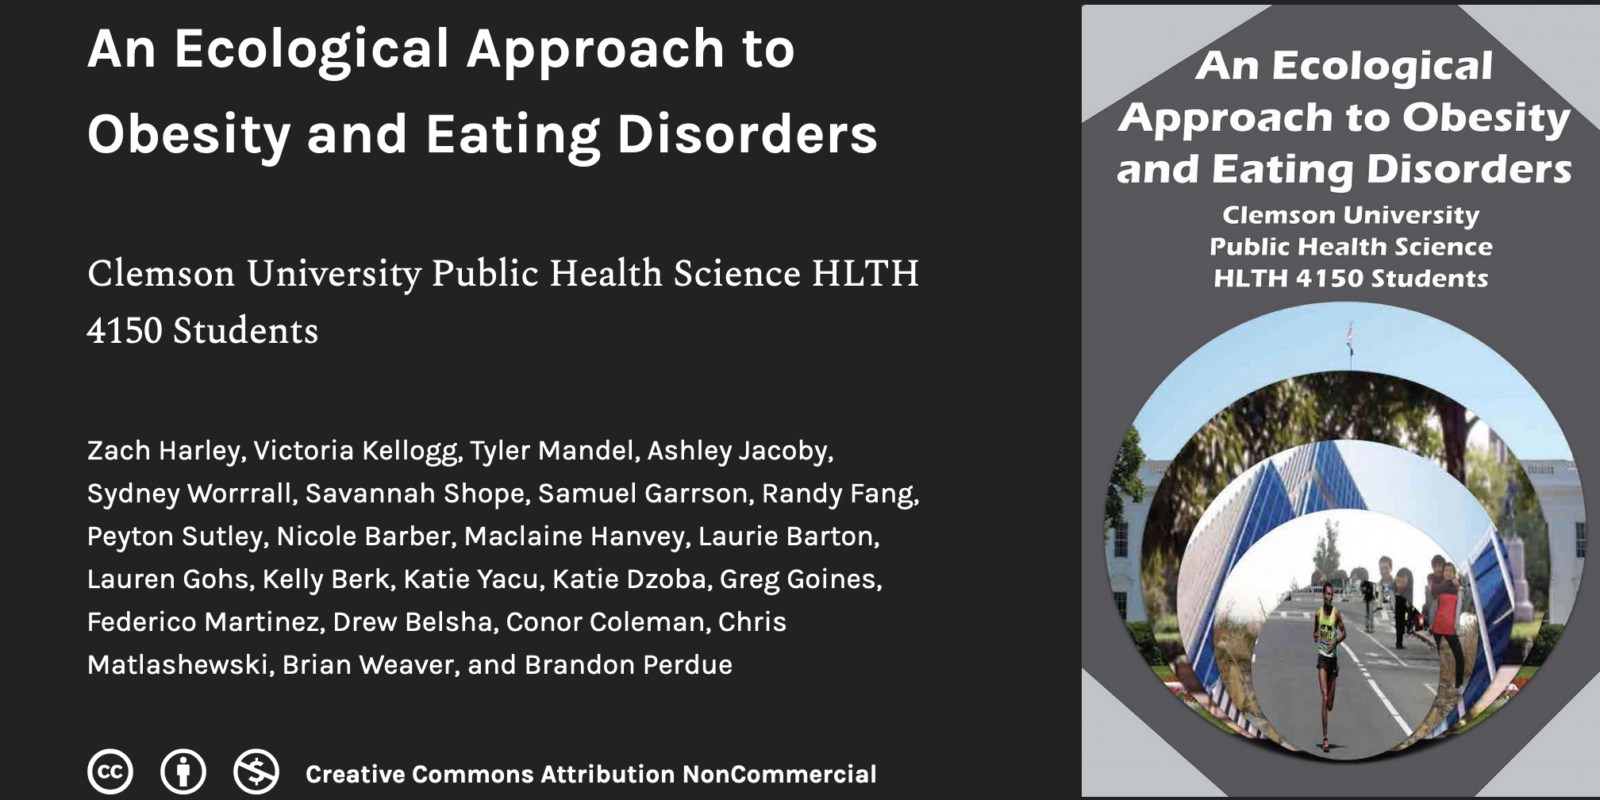 An Ecological Approach to Obesity and Eating Disorders